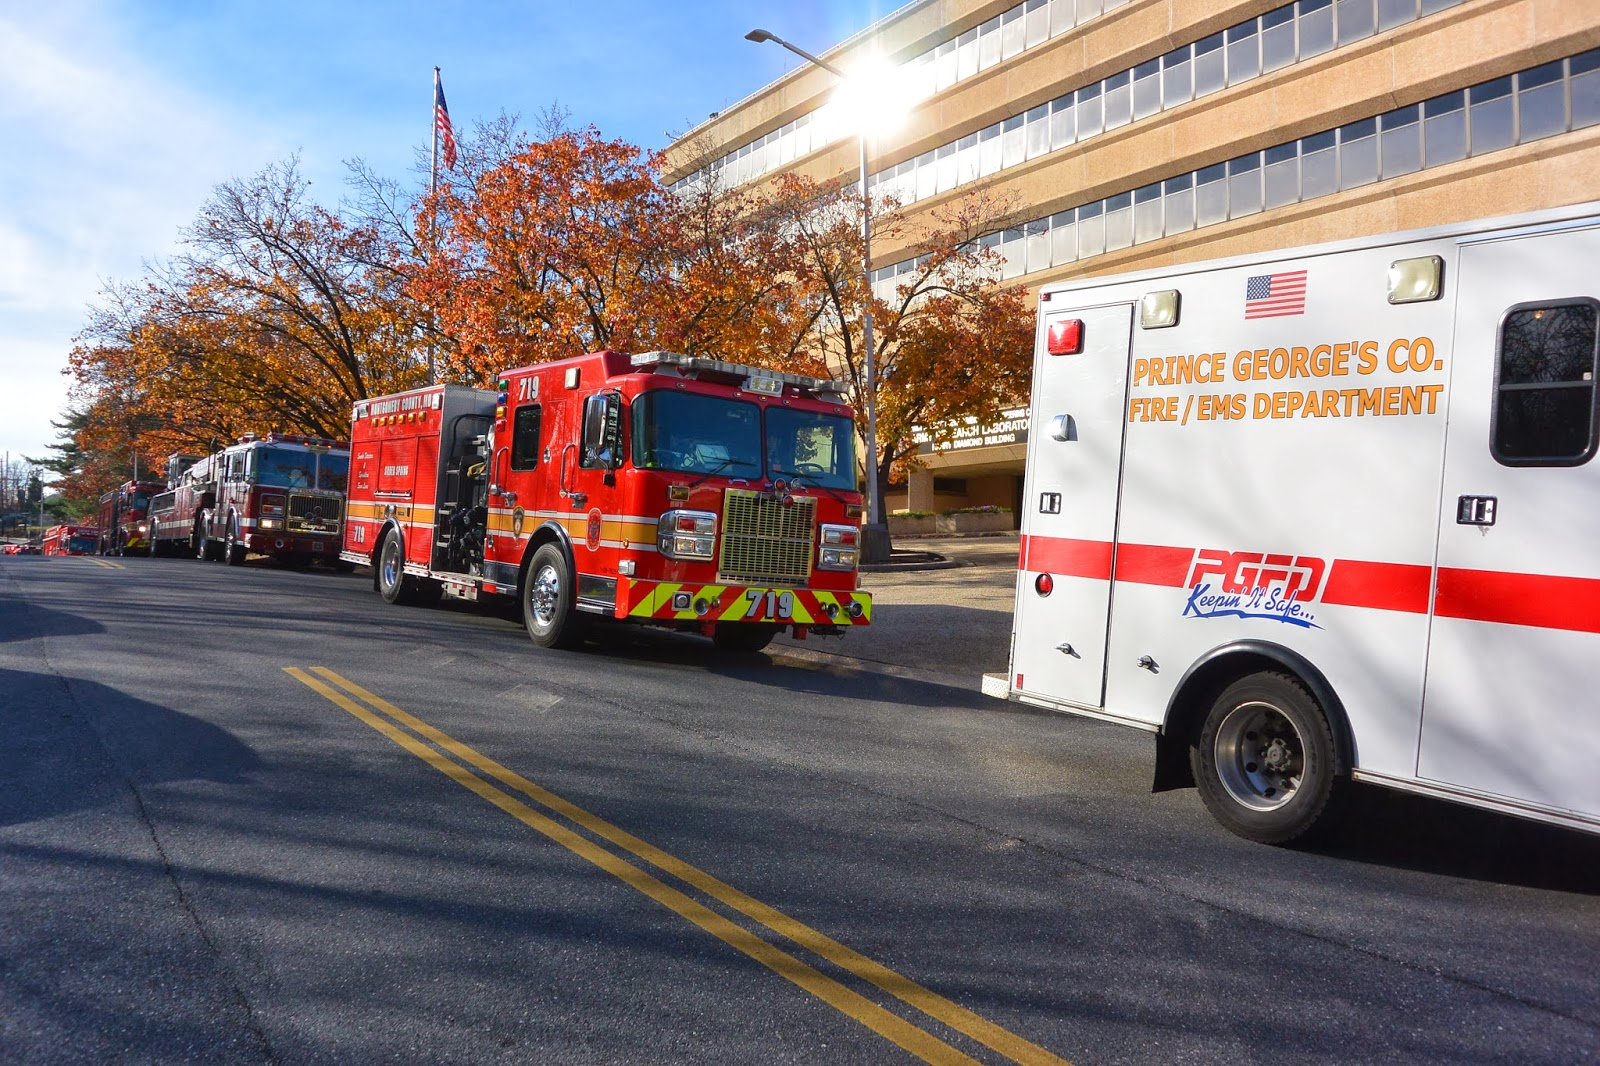 Prince George's County Fire/EMS Department: Prince George ...